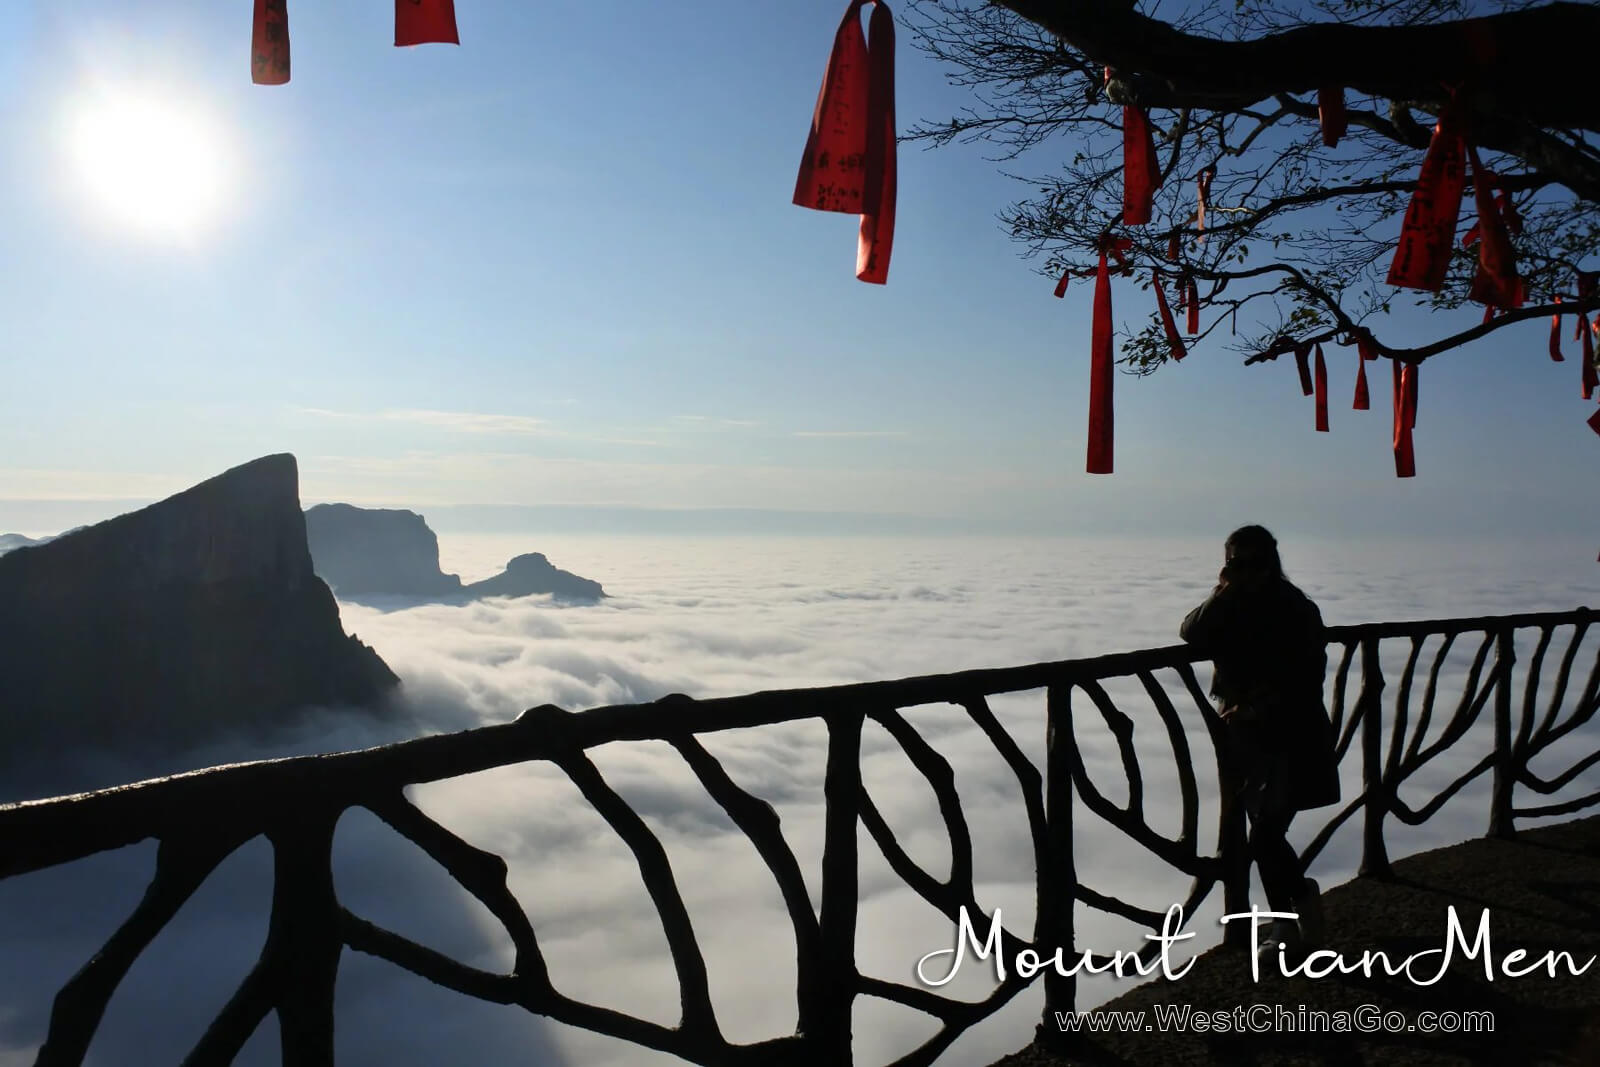 zhangjiajie Tour Photo Gallery